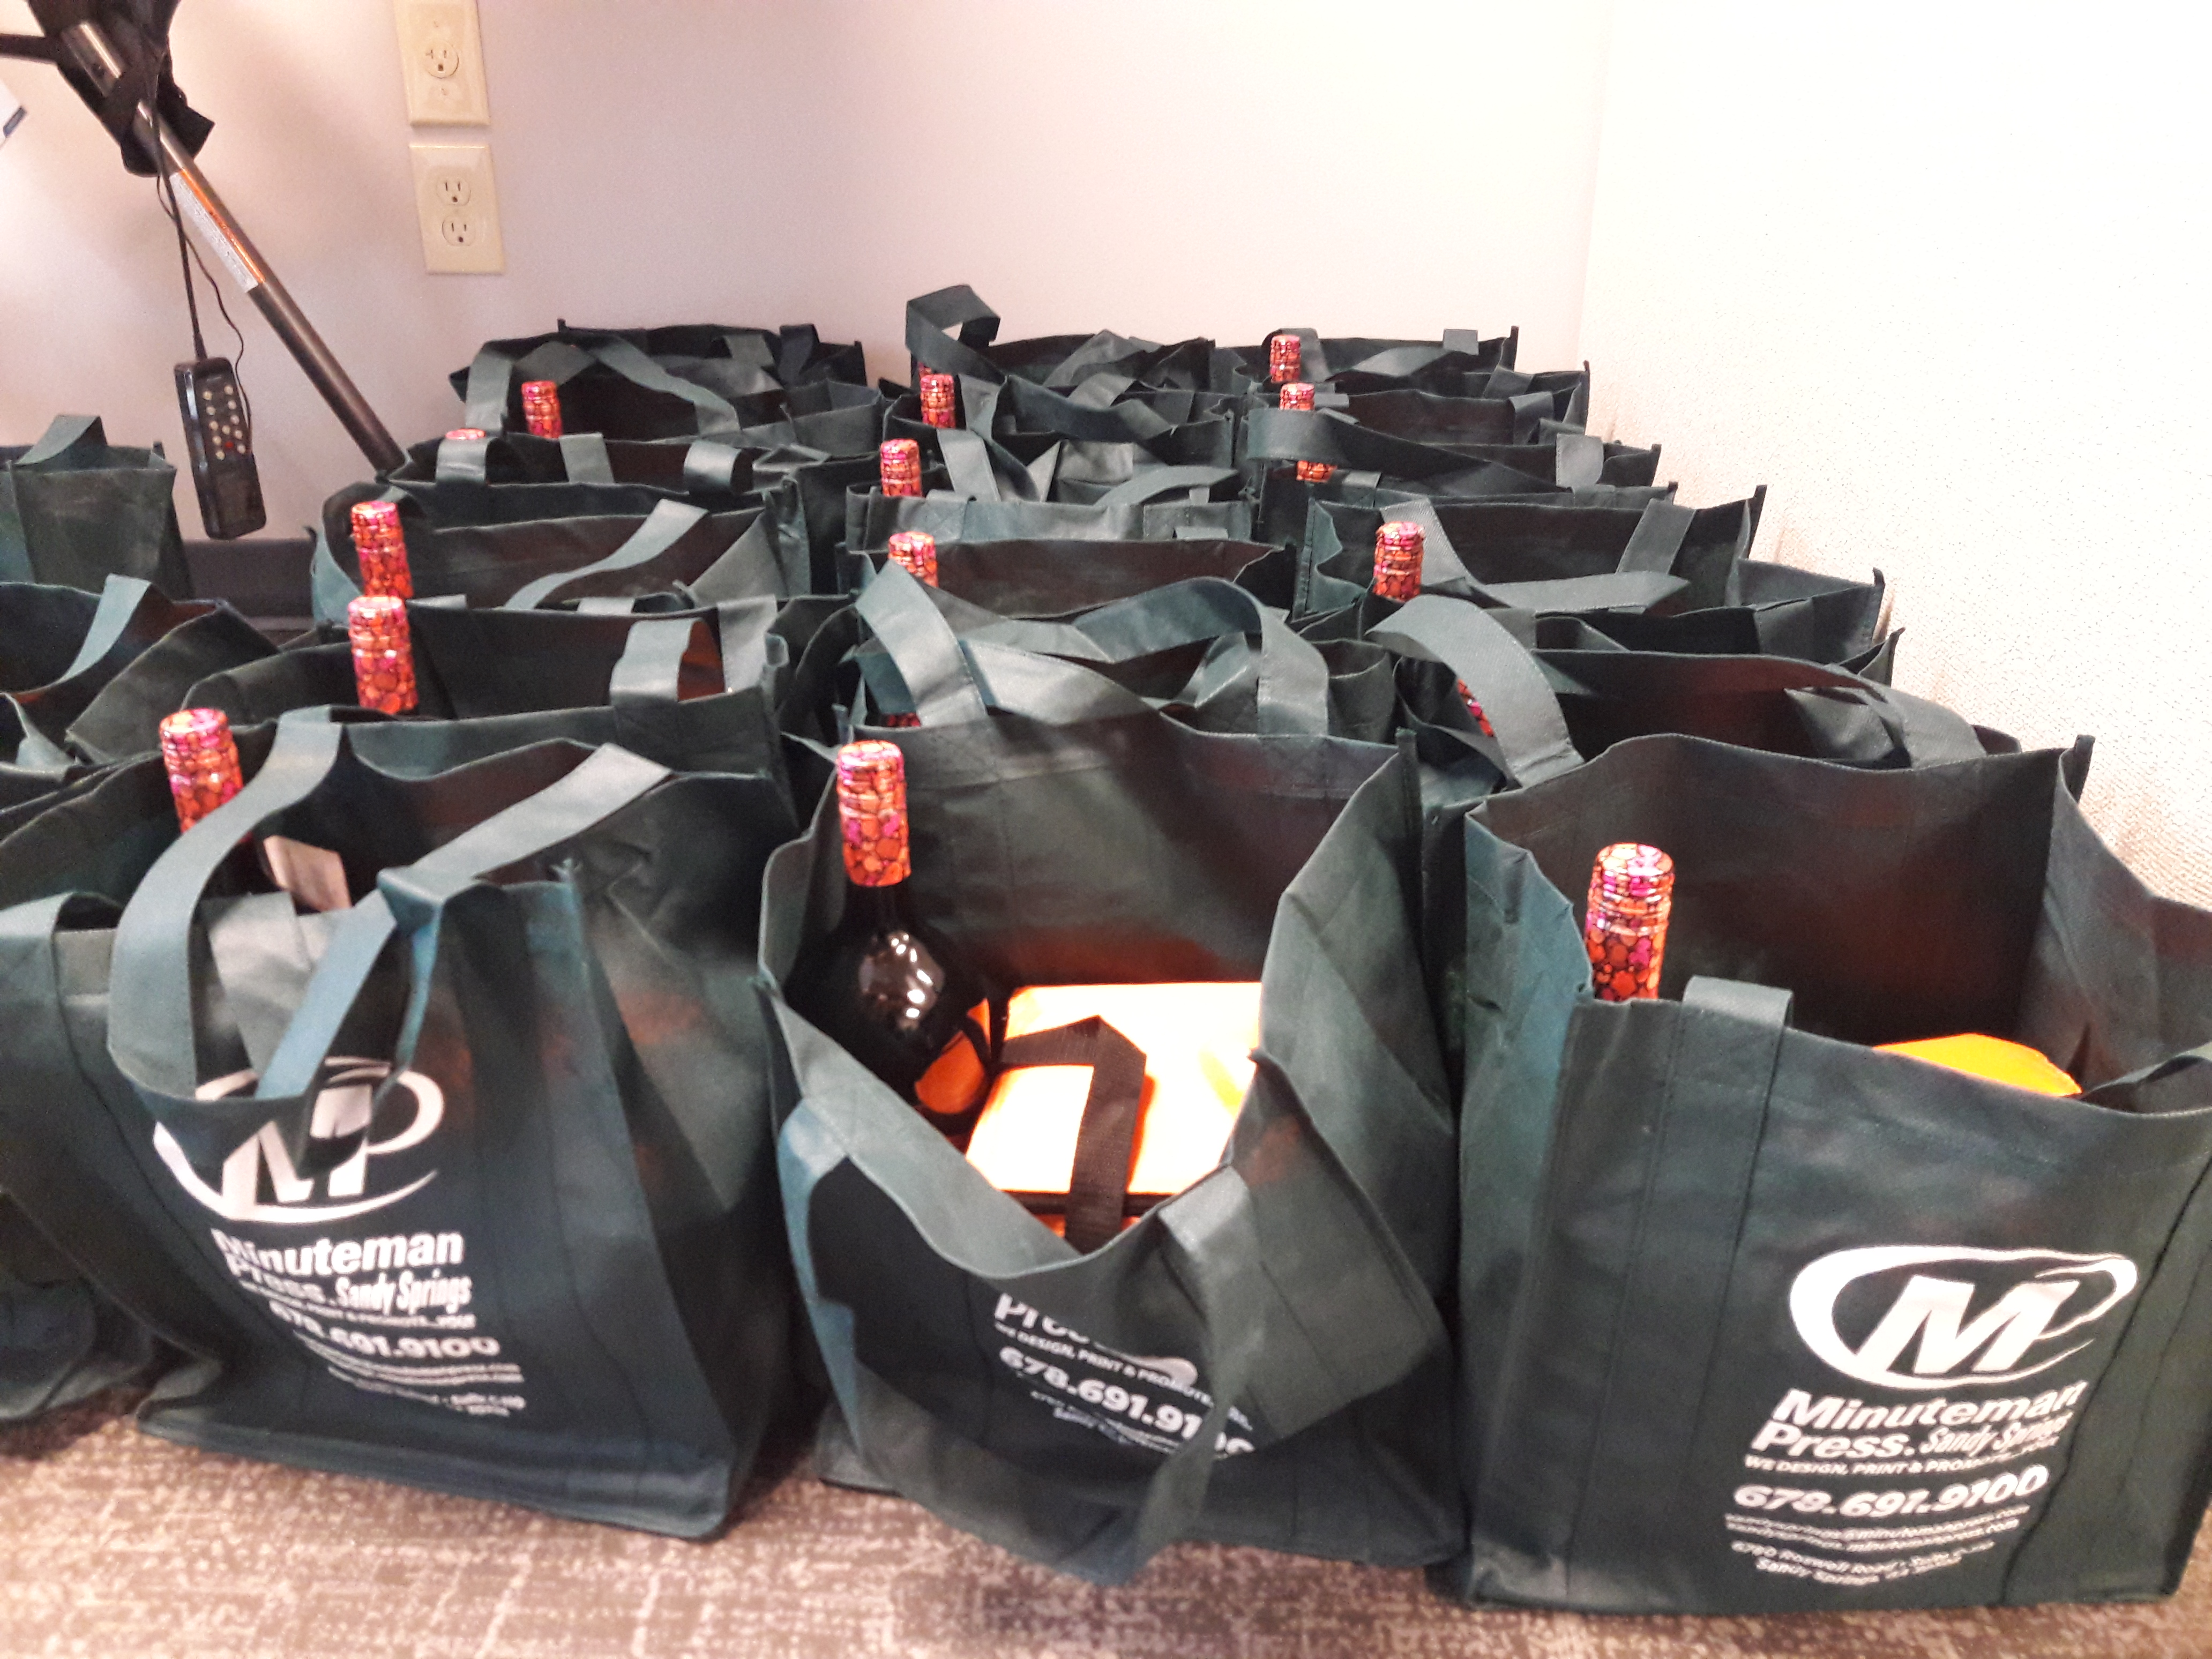 Minuteman Press branded tote bags were filled with promotional products as well as other items and given away to those who attended the grand re-opening event in Sandy Springs, GA. http://www.minutemanpressfranchise.com